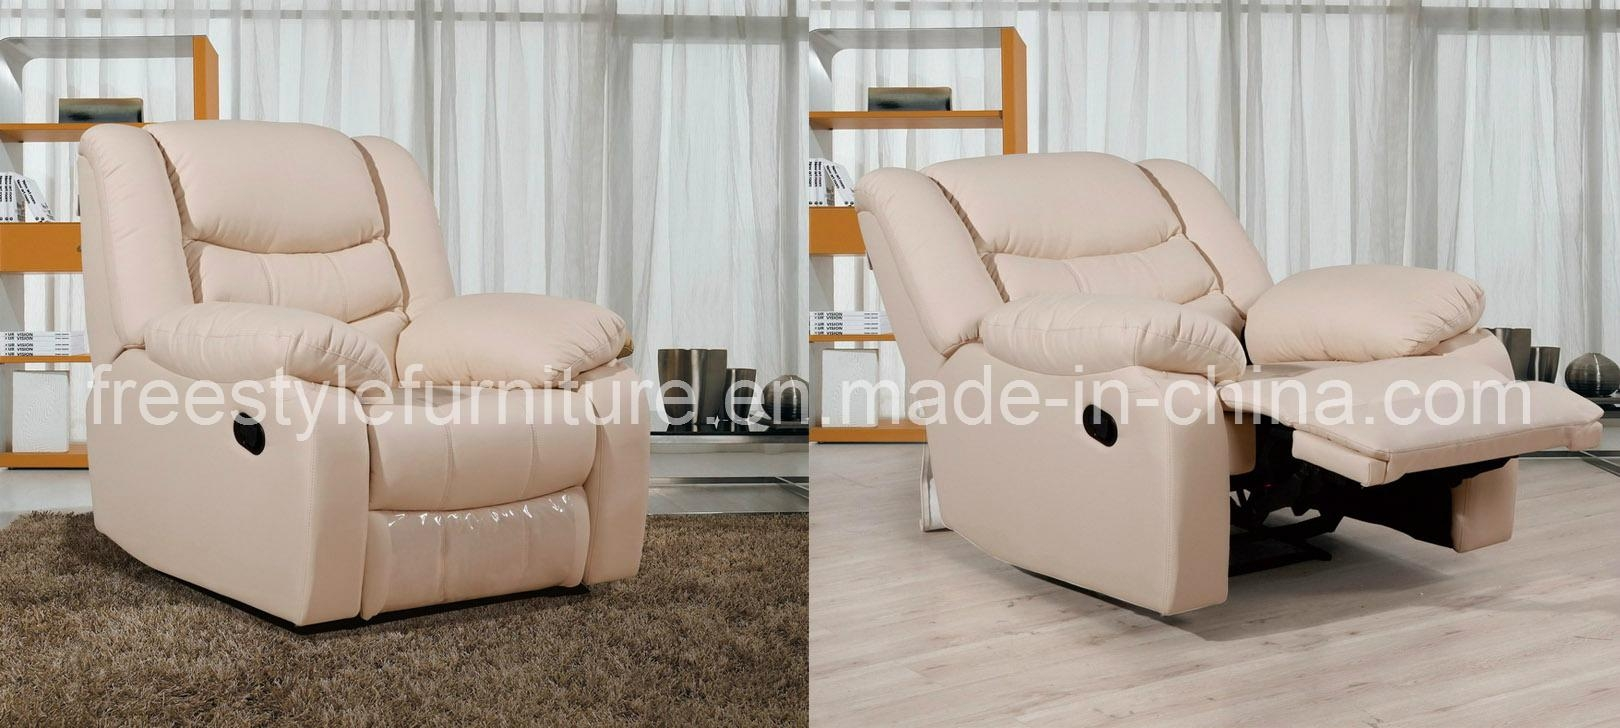 Featured Image Of Rocking Sofa Chairs